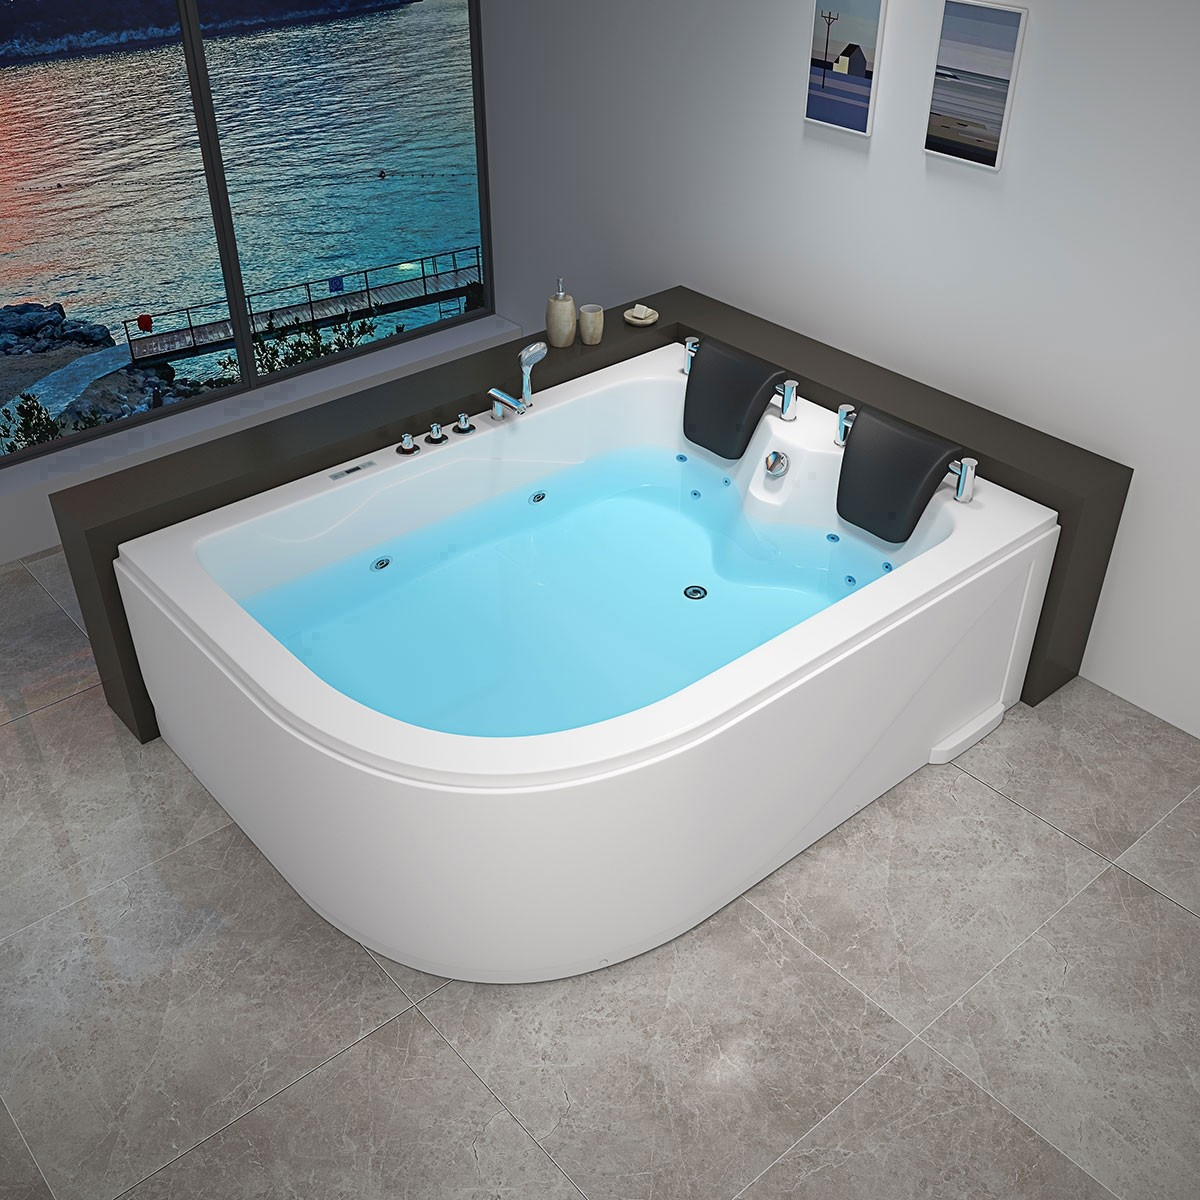 Decoraport 71 x 47 In Whirlpool Tub with Computer Panel, Heater, Ozone (DK-RL-6153)